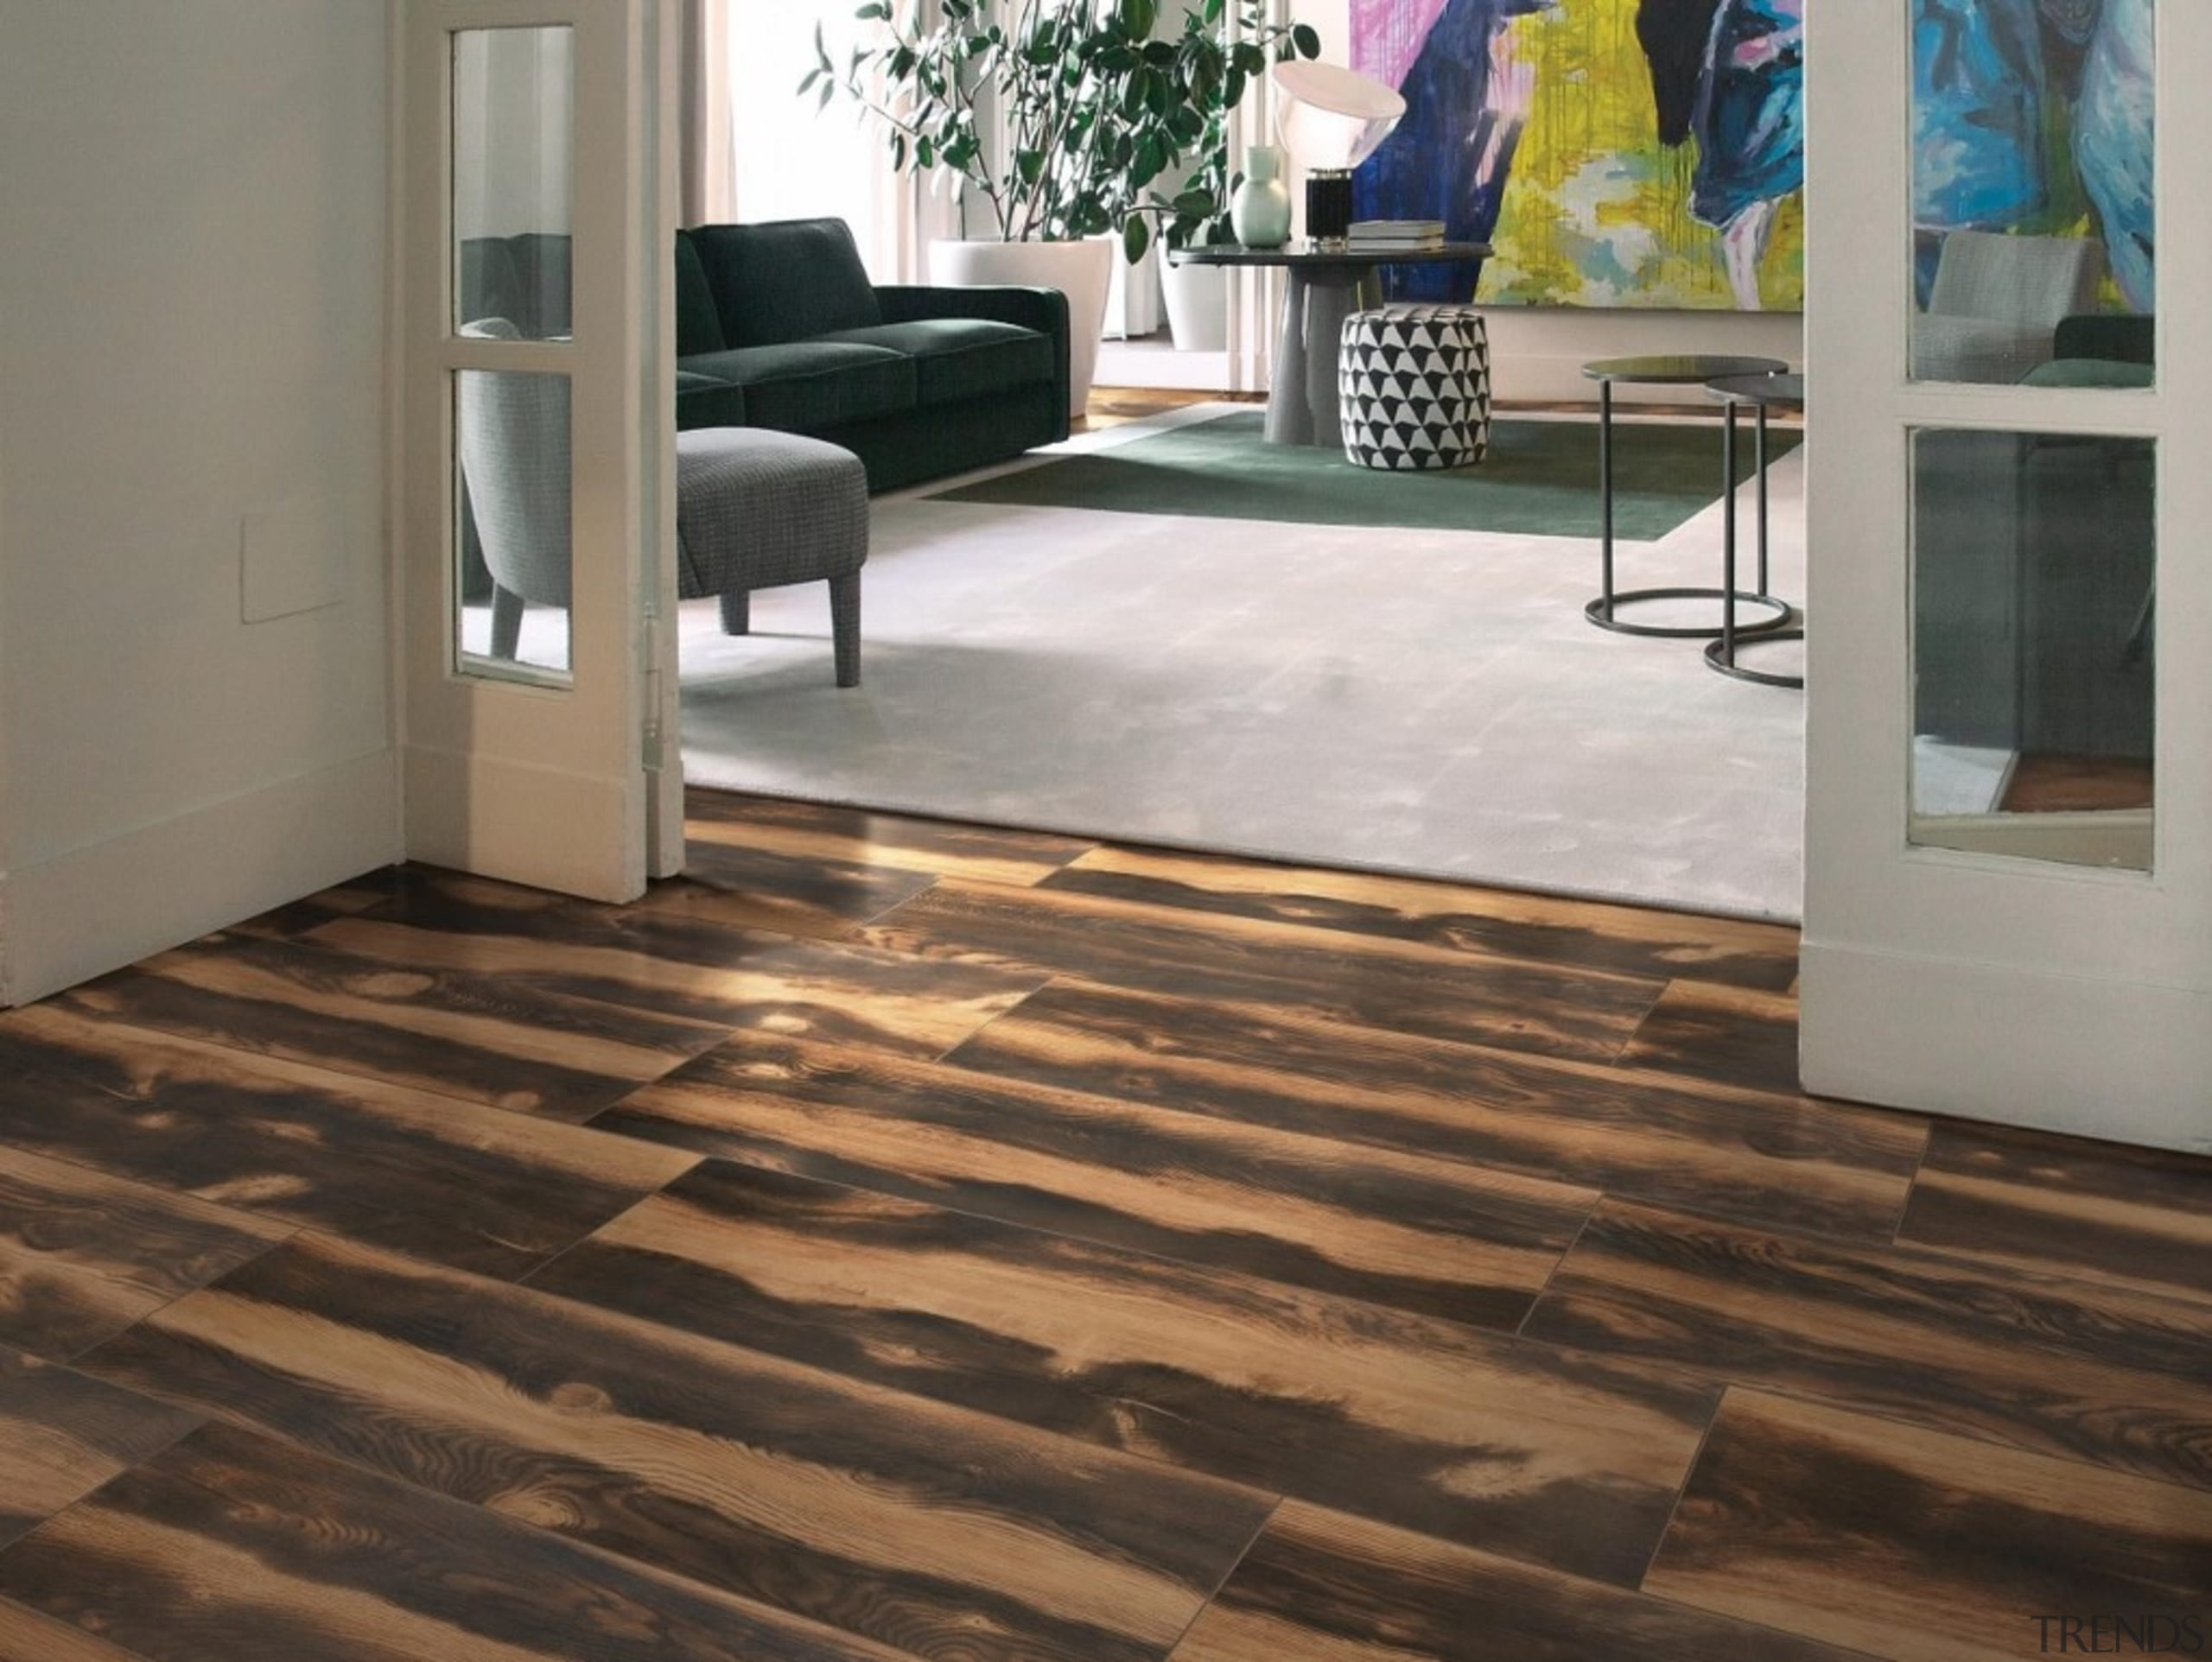 The striking tonal variation of Burned Tanned emulates floor, flooring, hardwood, laminate flooring, tile, wood, wood flooring, gray, black